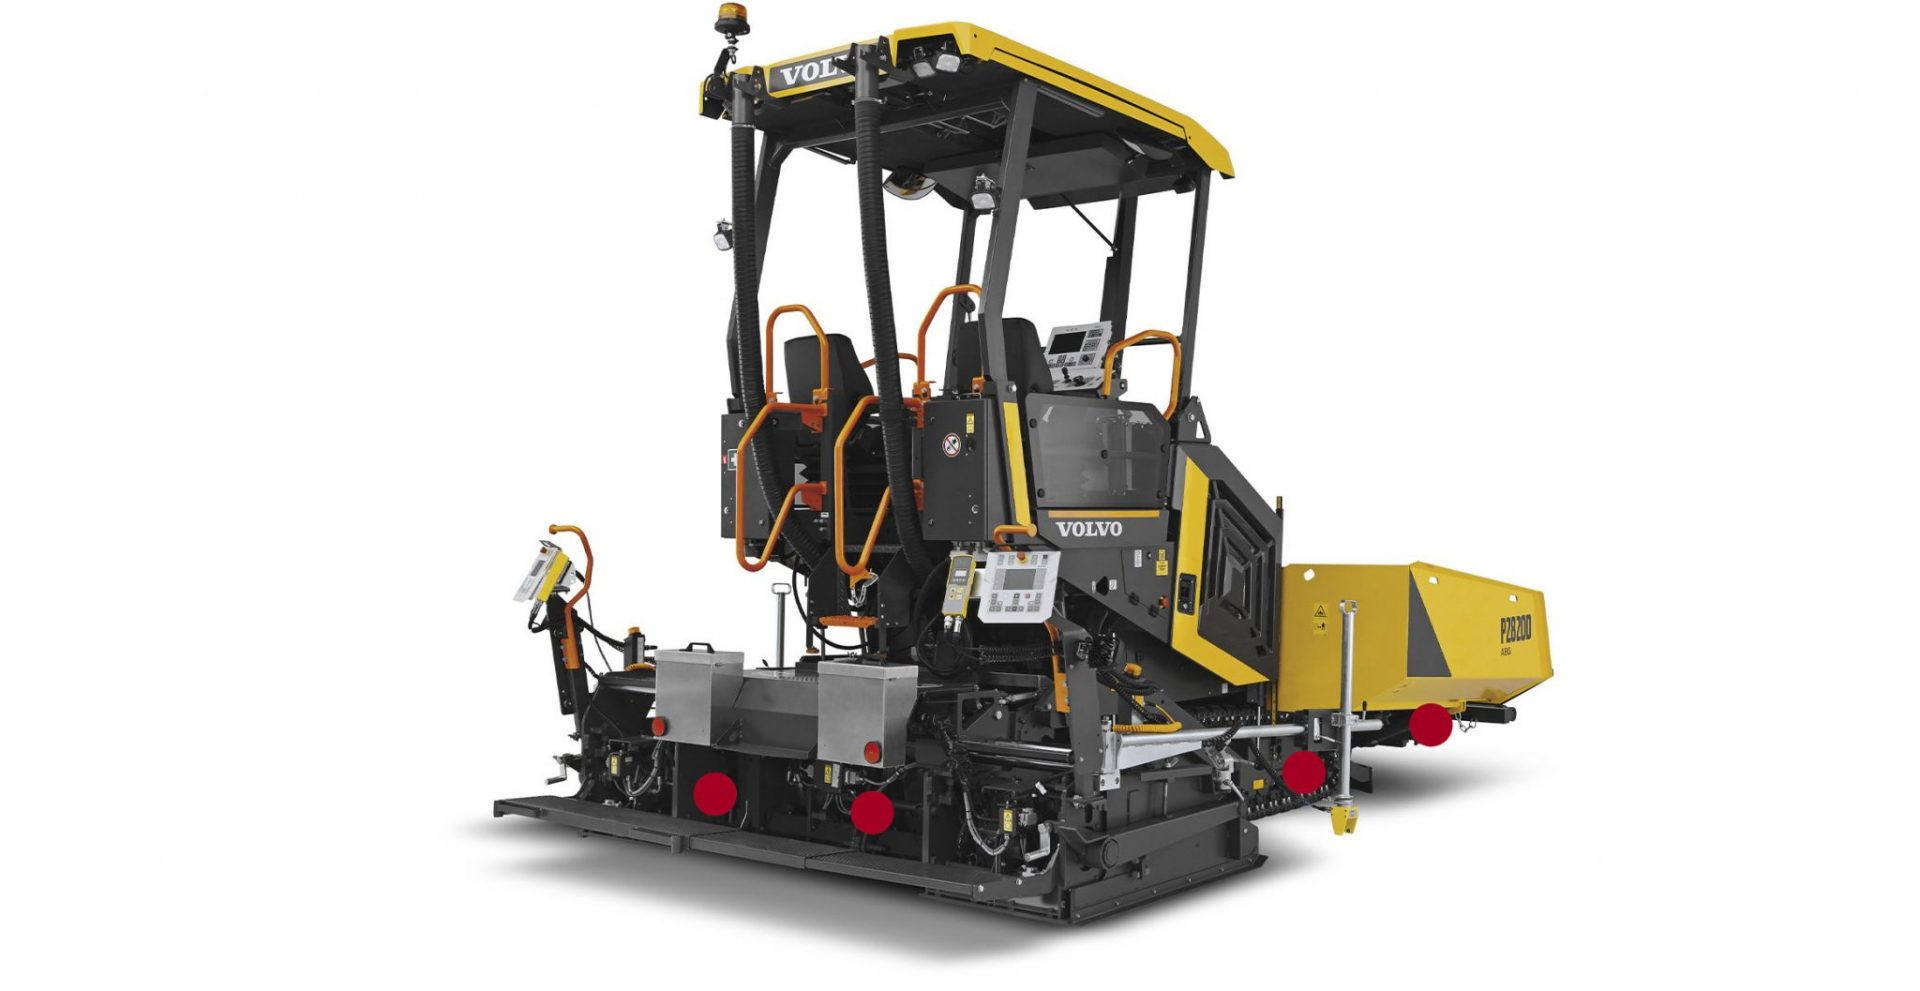 volvo benefits tracked paver p2820d t3 stagev maintaining uptime 23241200 1